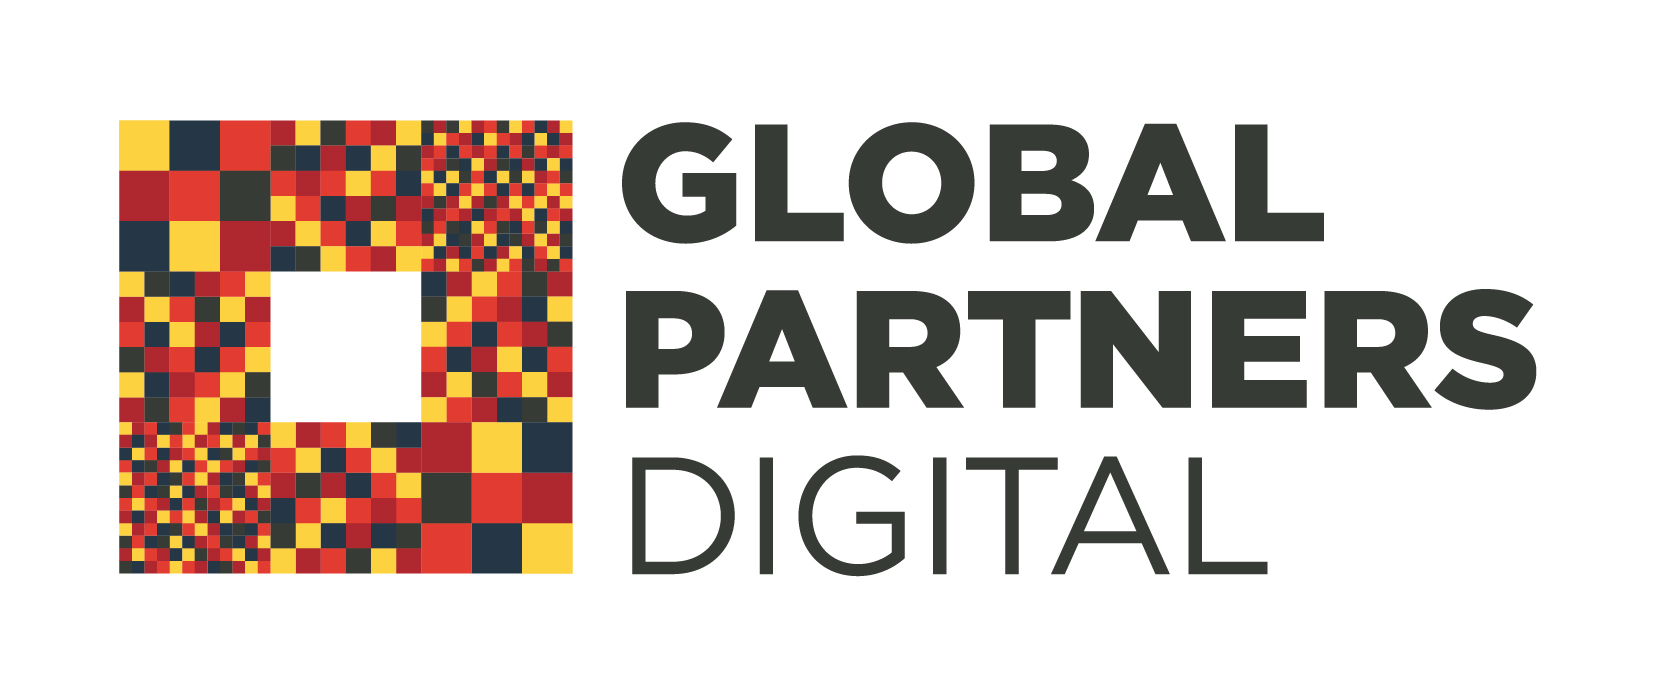 Global Partners Digital